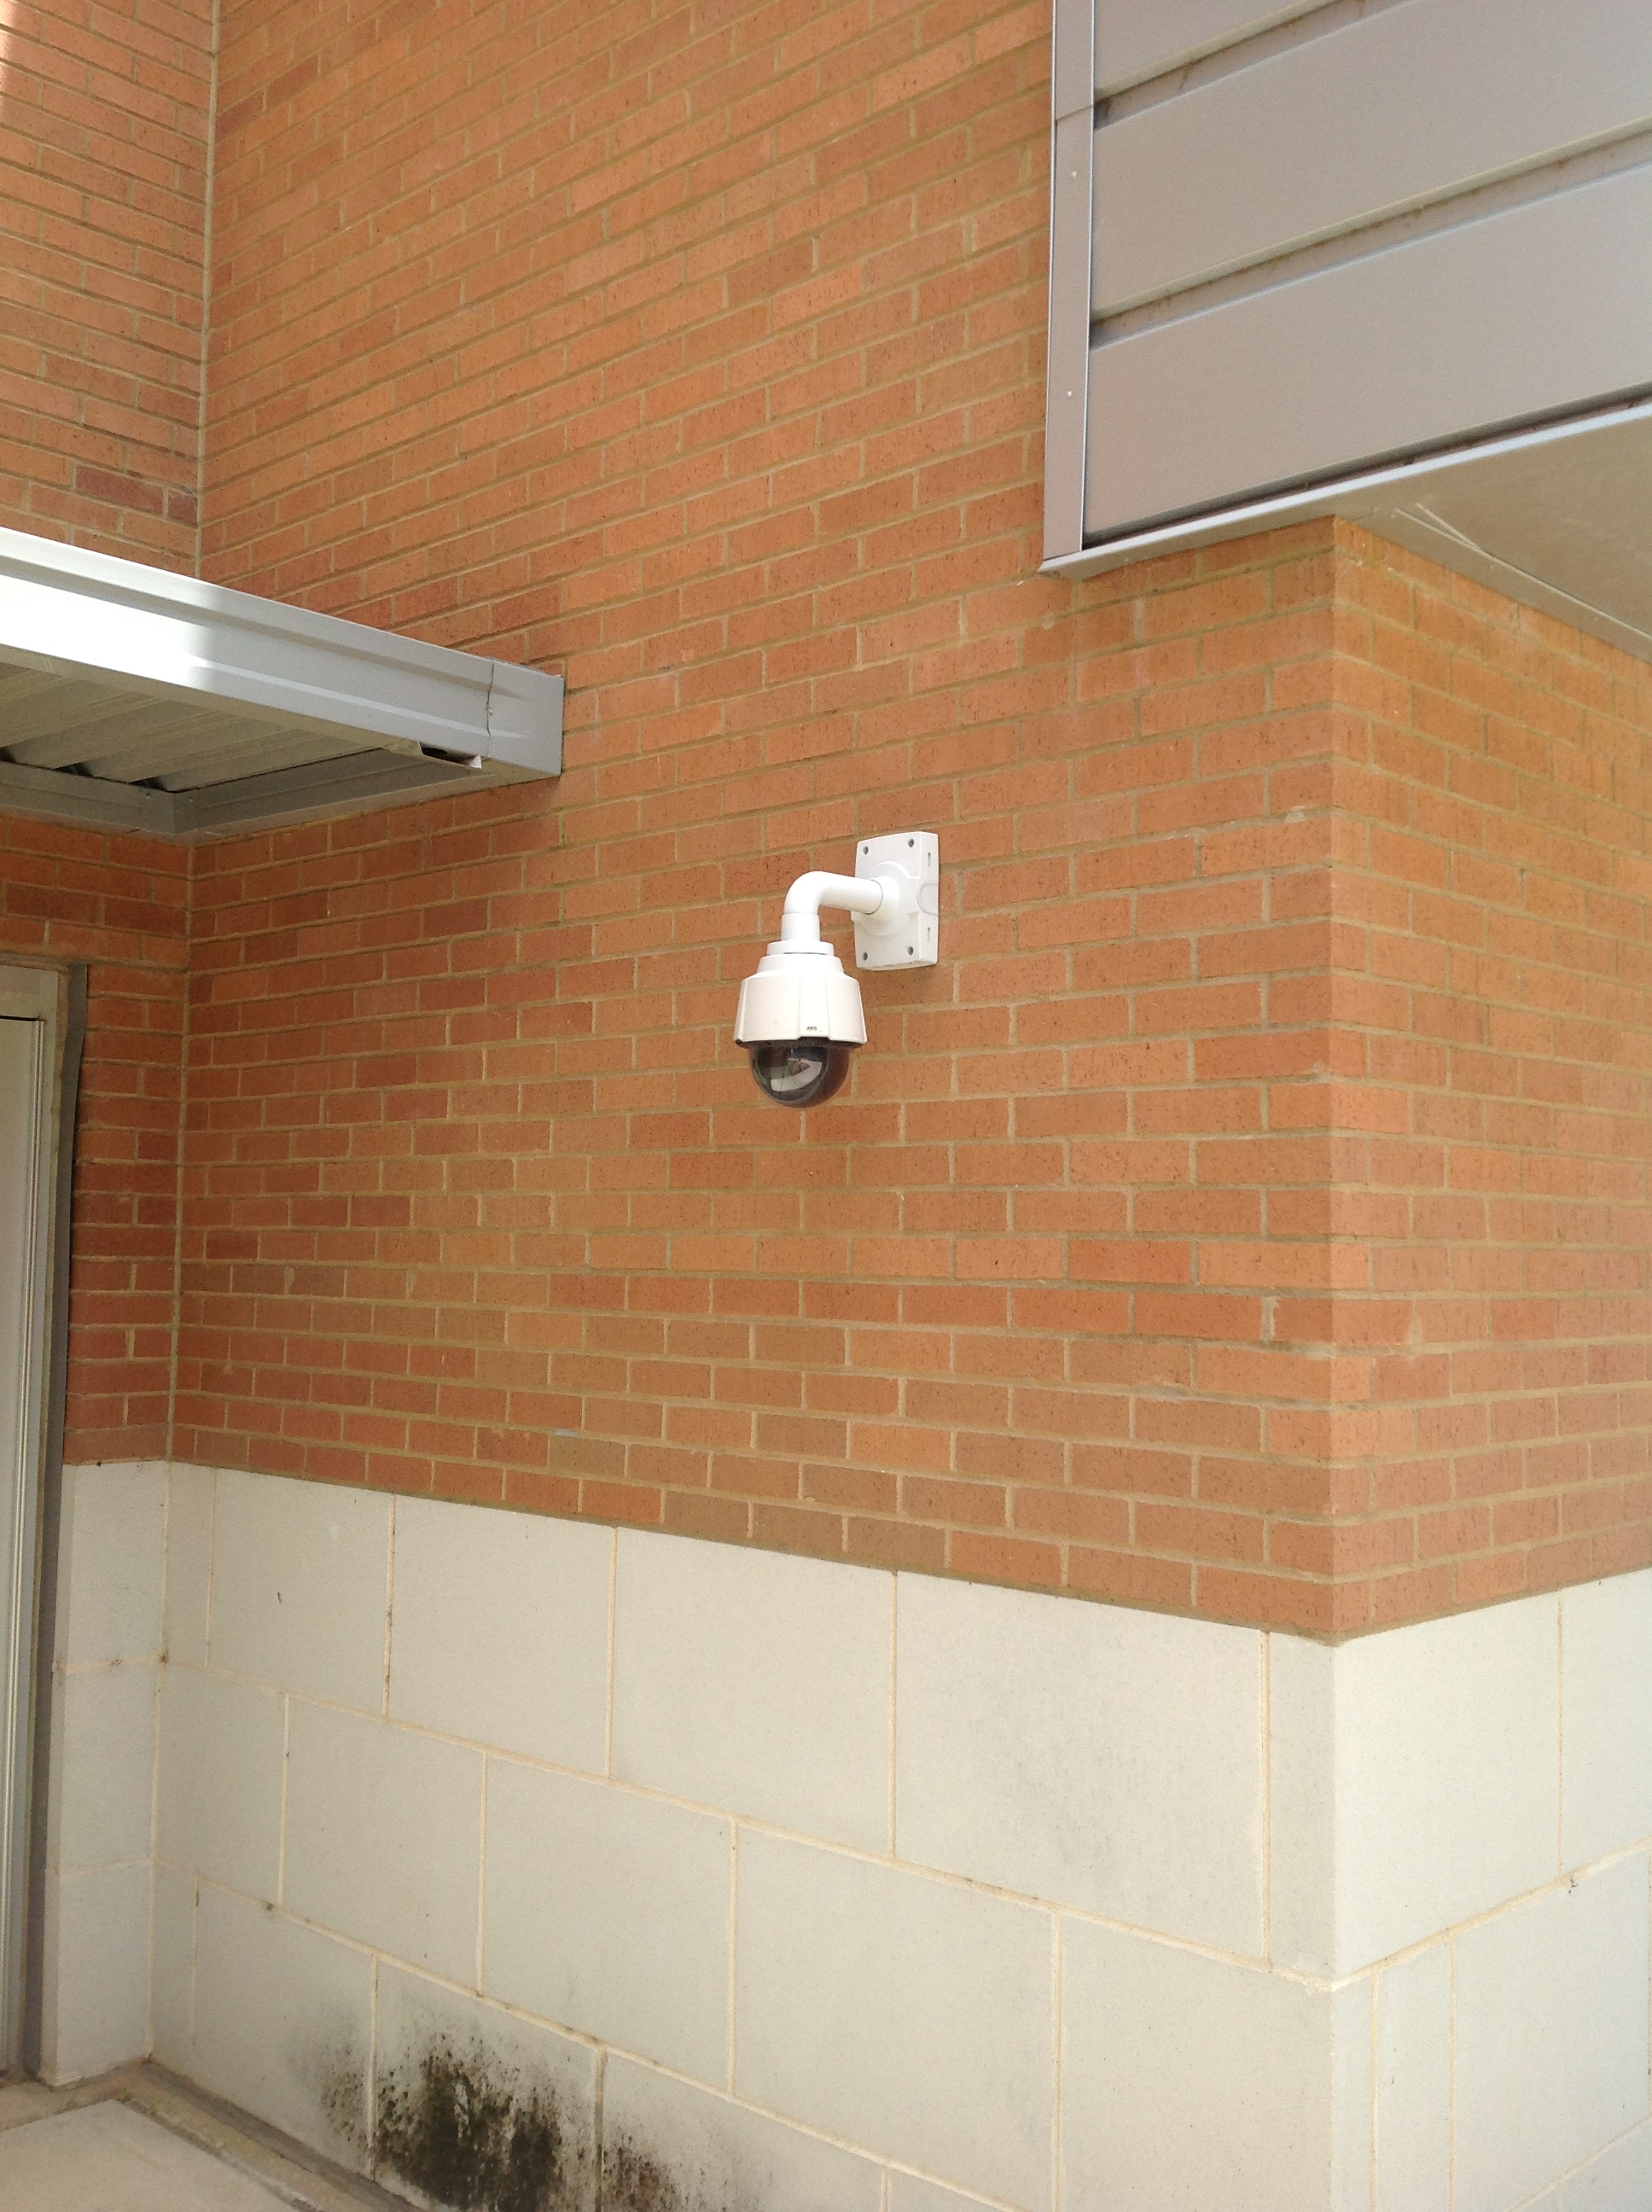 Video Surveillance & Security Design